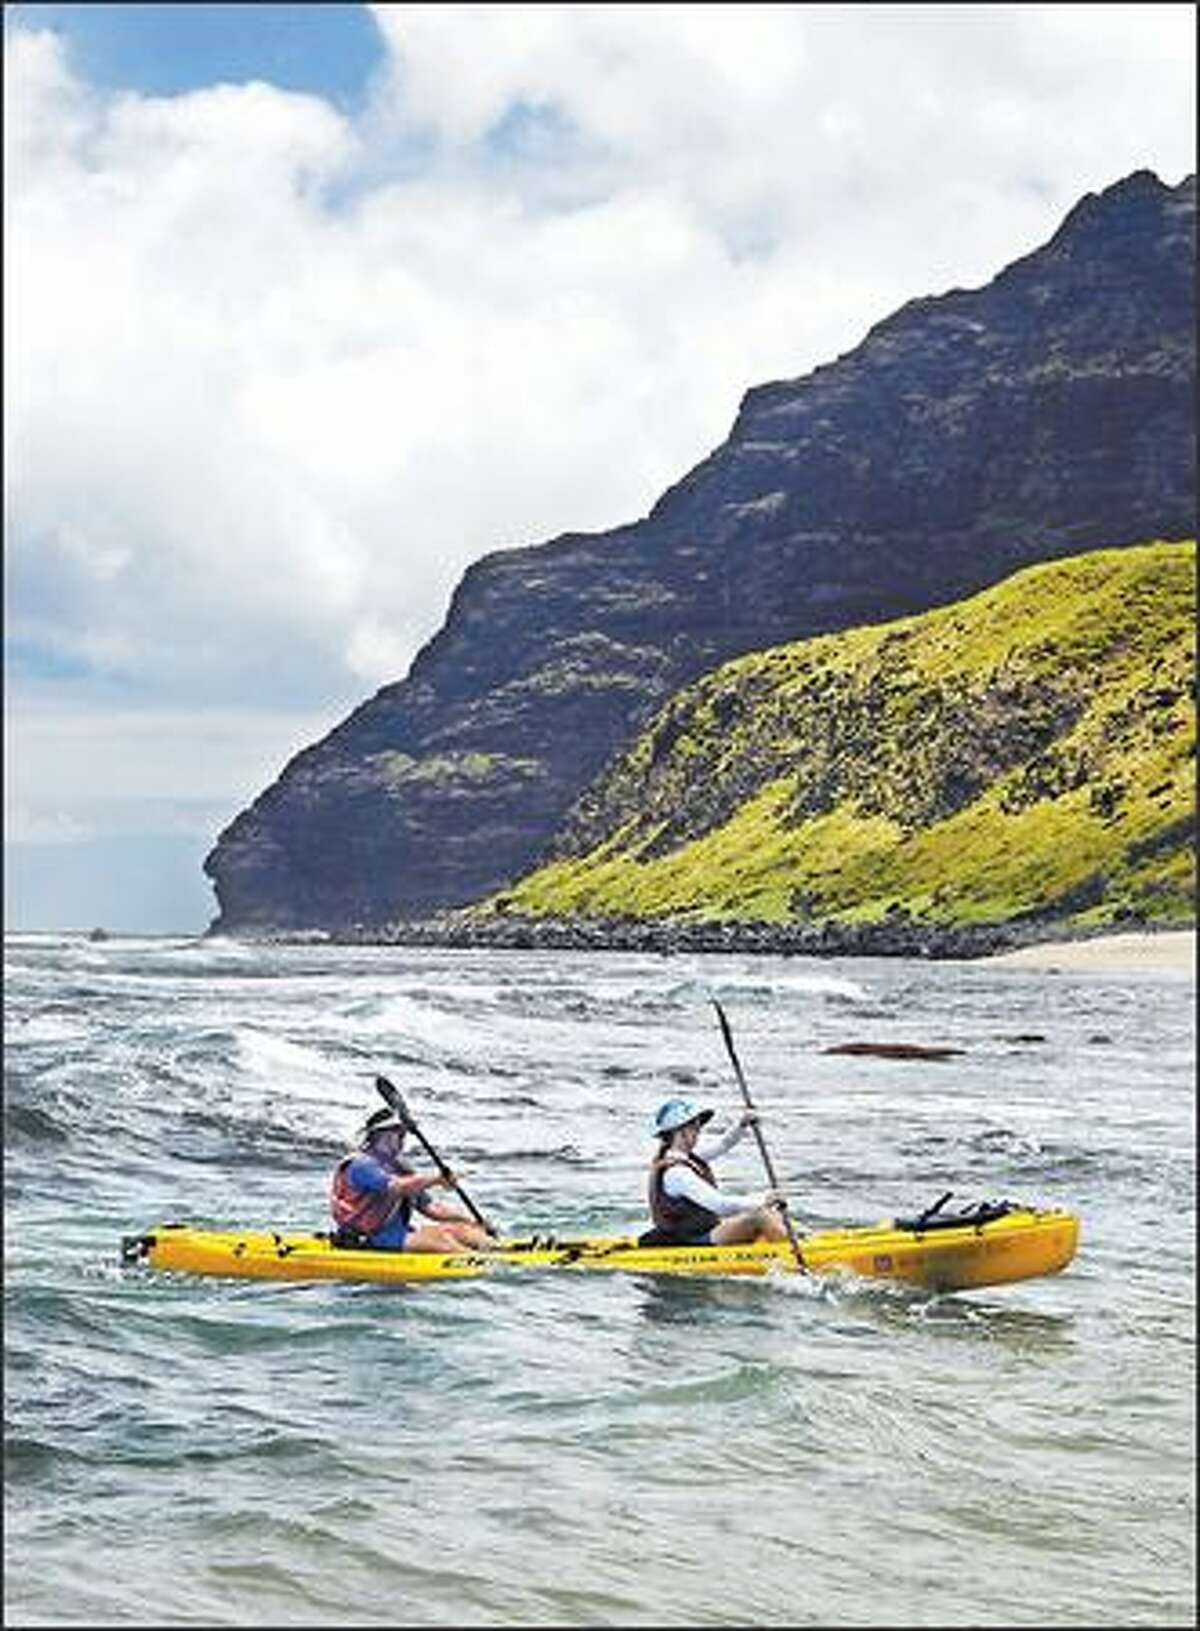 Kayakers head into shore at Polihale State Park after a spectacular 17-mile paddle along the Na Pali Coast.